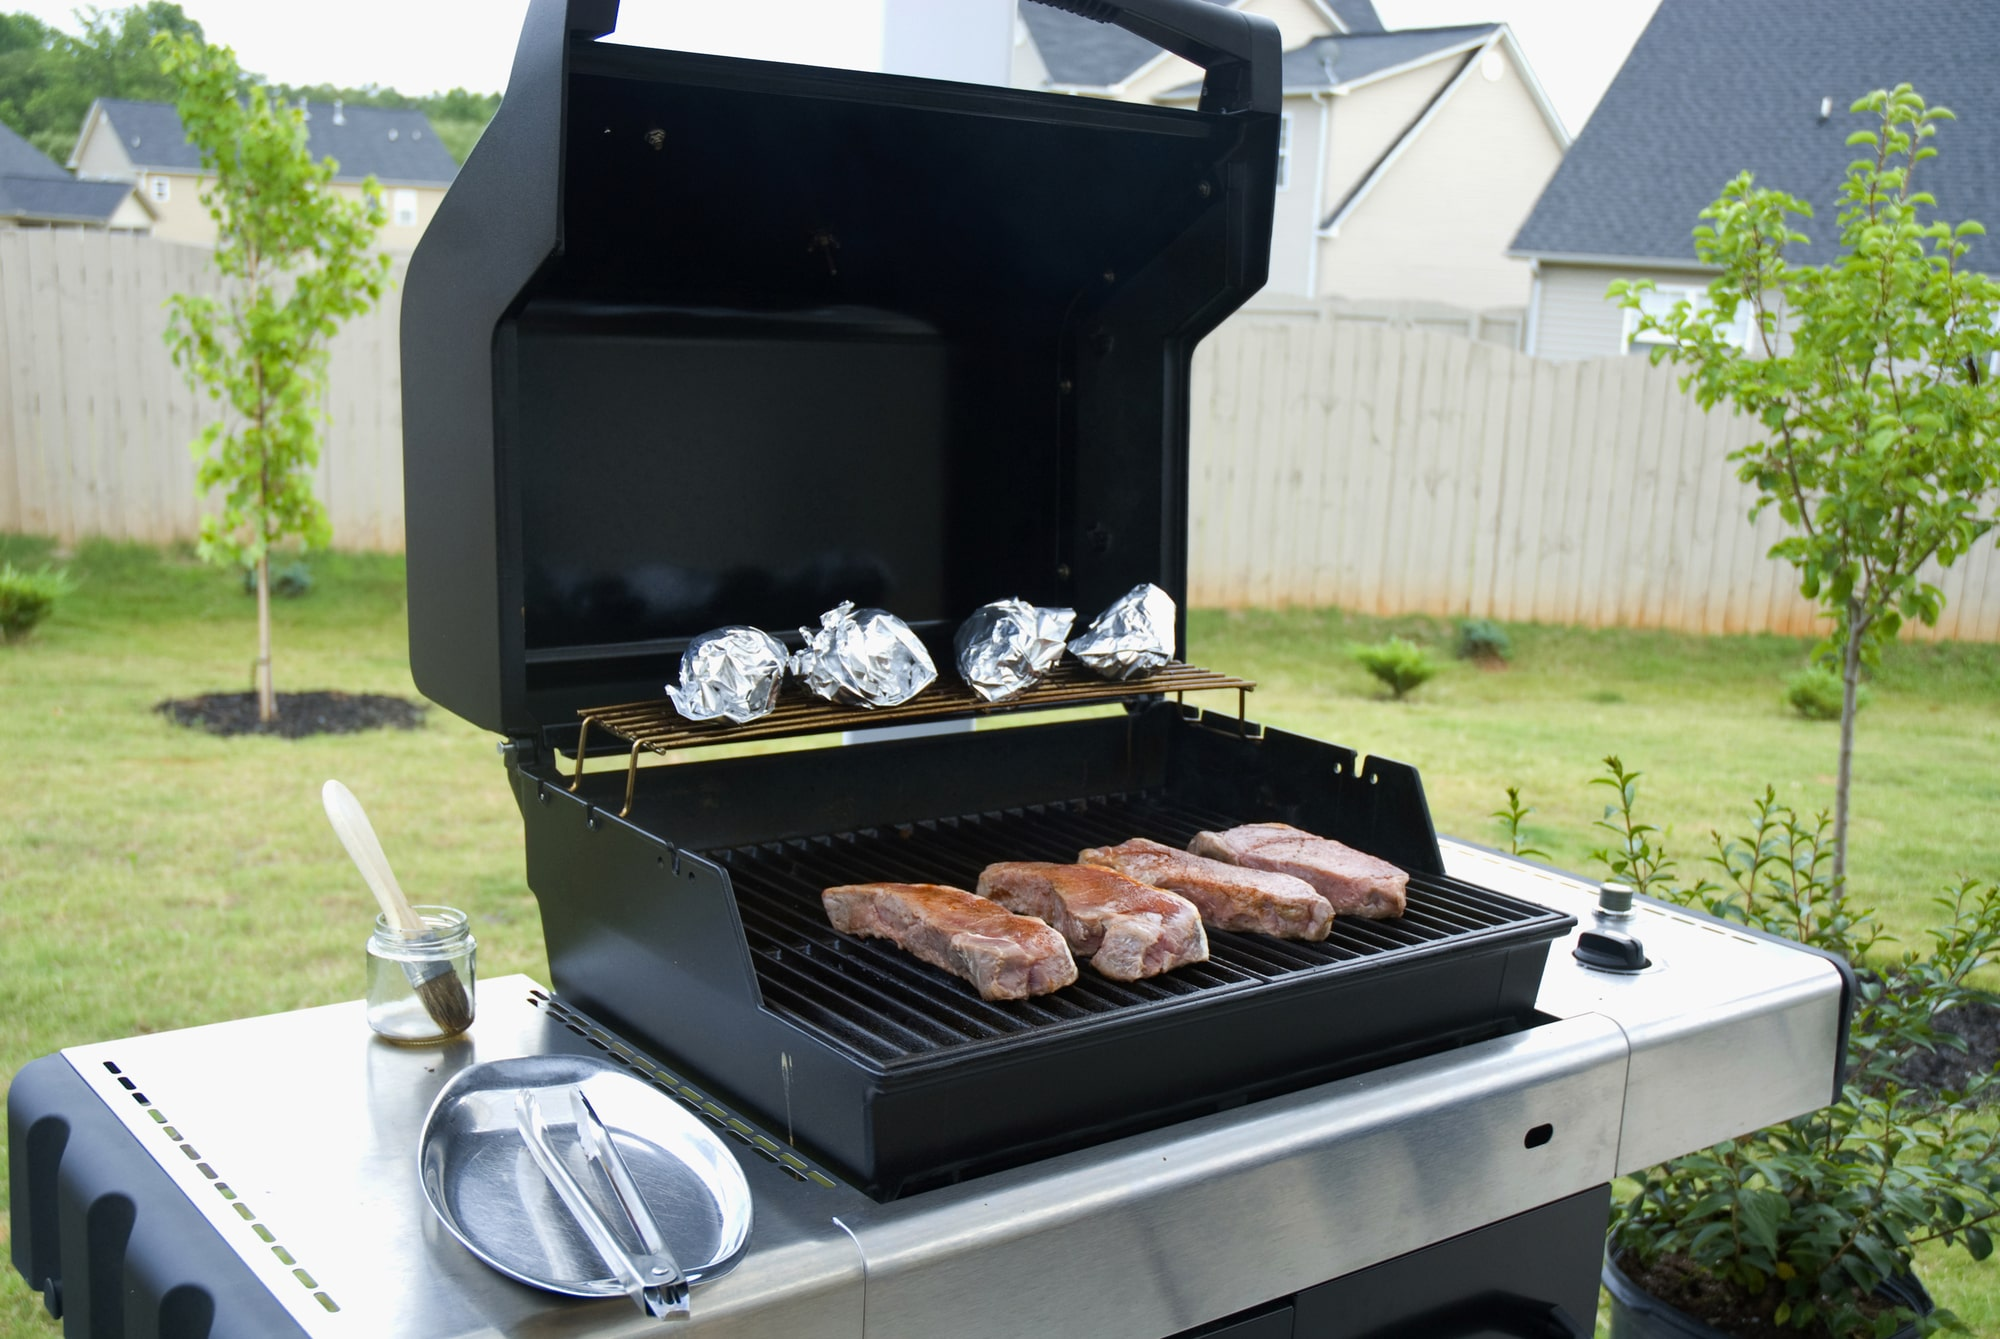 Gasgrill on a budget Galerie1